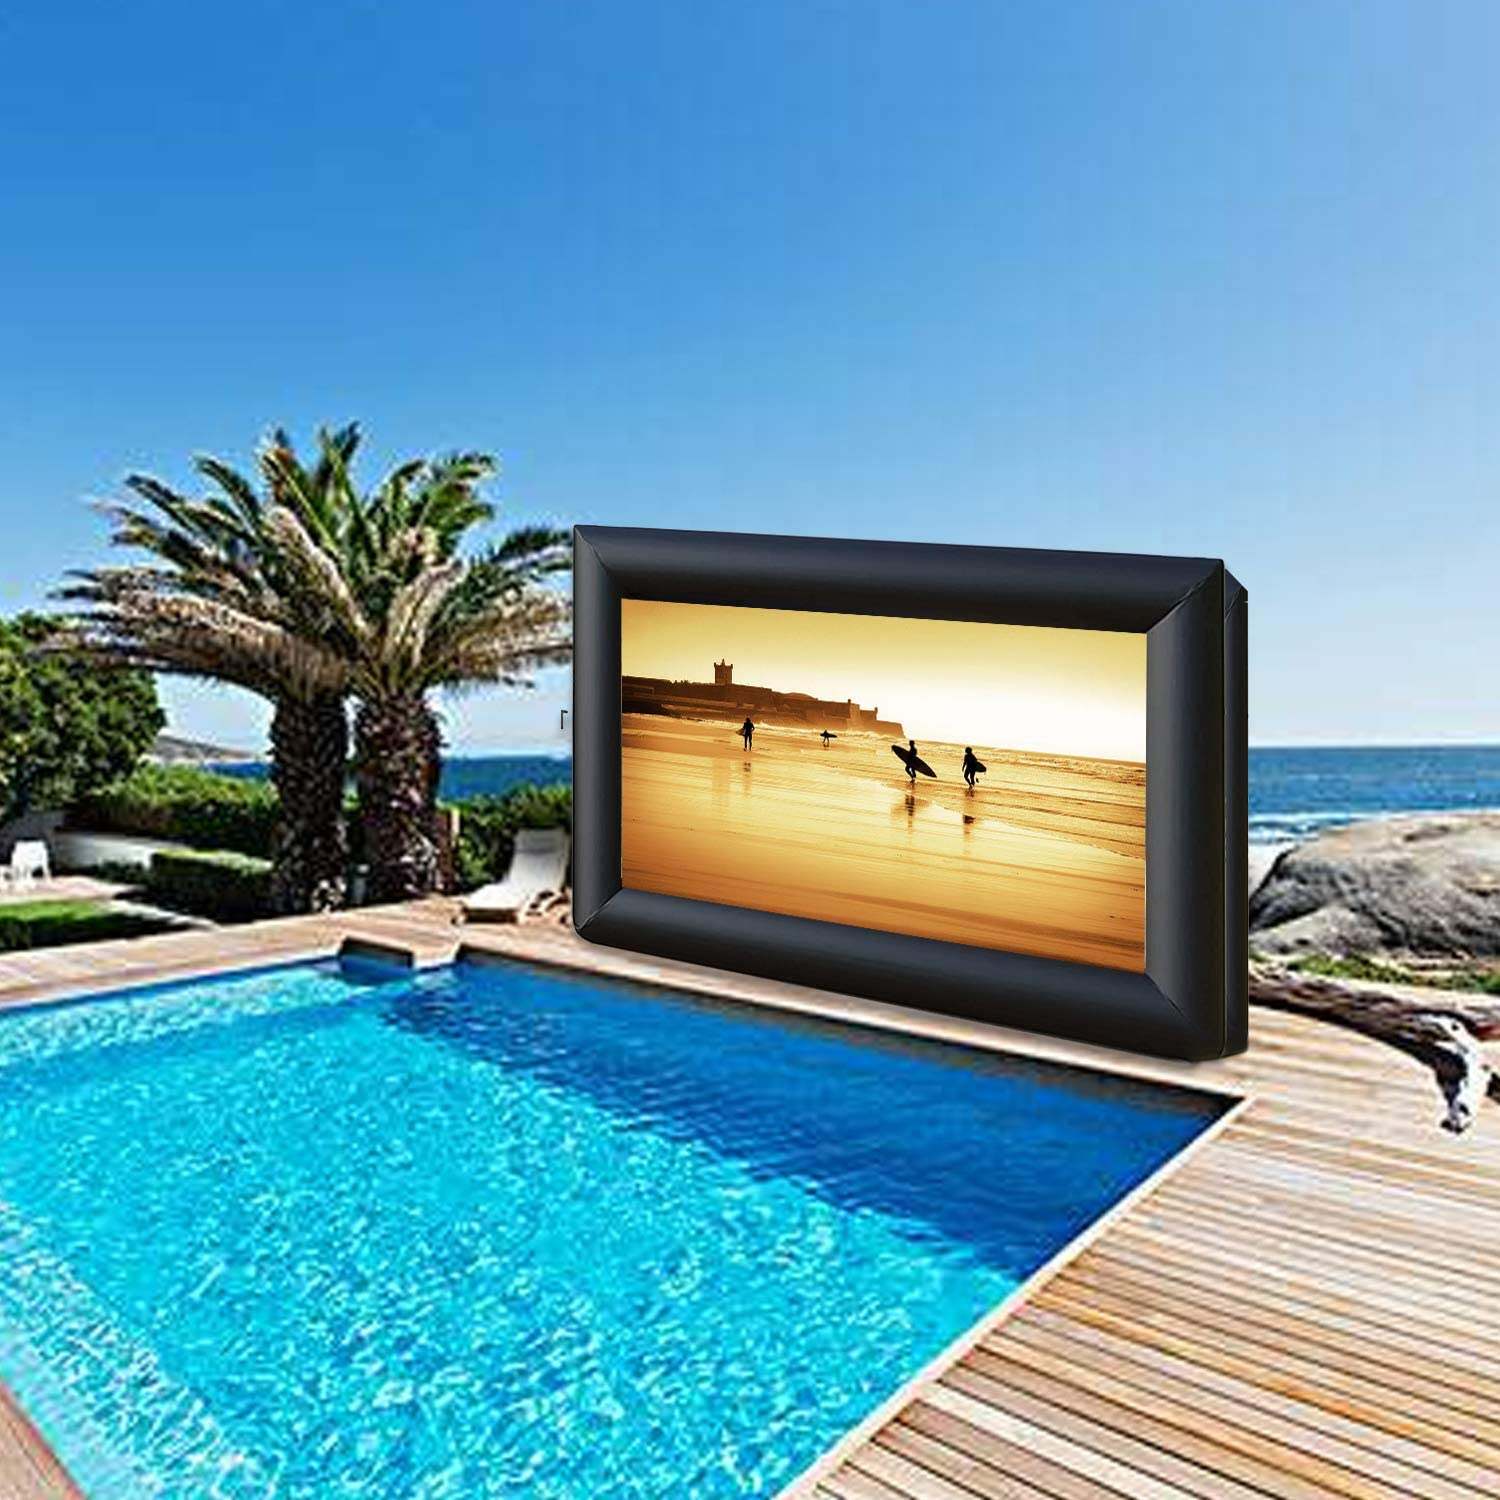 30 FT Outdoor Inflatable Projector Movie Screen-for Outdoor Parties- Front and Rear Viewing Supported-Includes Inflation Fan, Tie-Downs,Repair Kits and Storage Bag… (30)